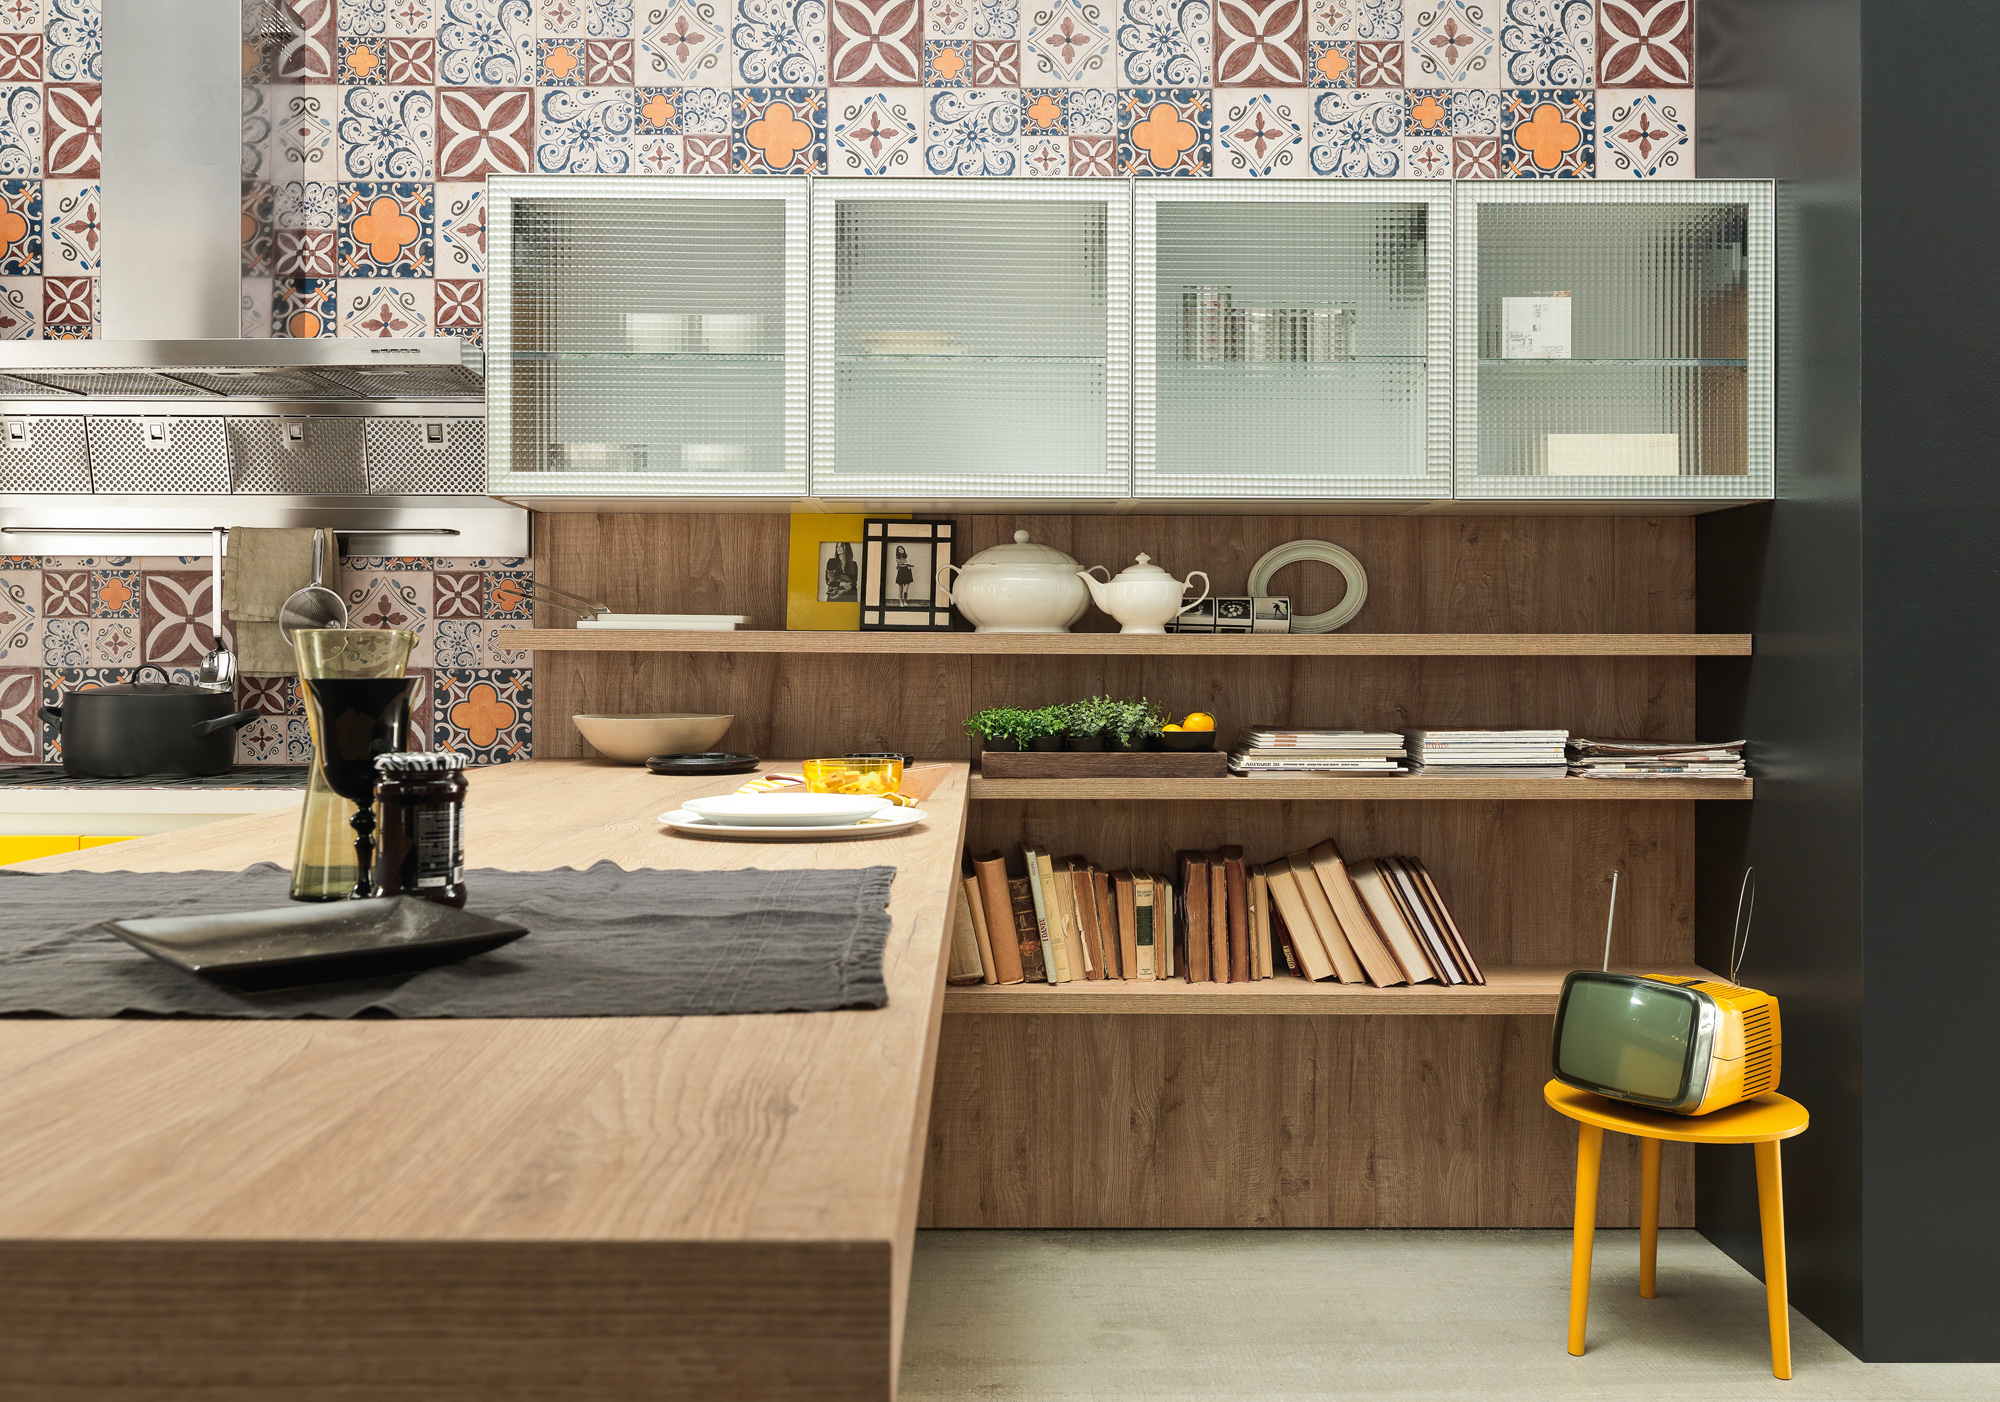 Cucina Stile Industrial Chic All About Kelly Russell Lusso E Stile Kidskunst Info